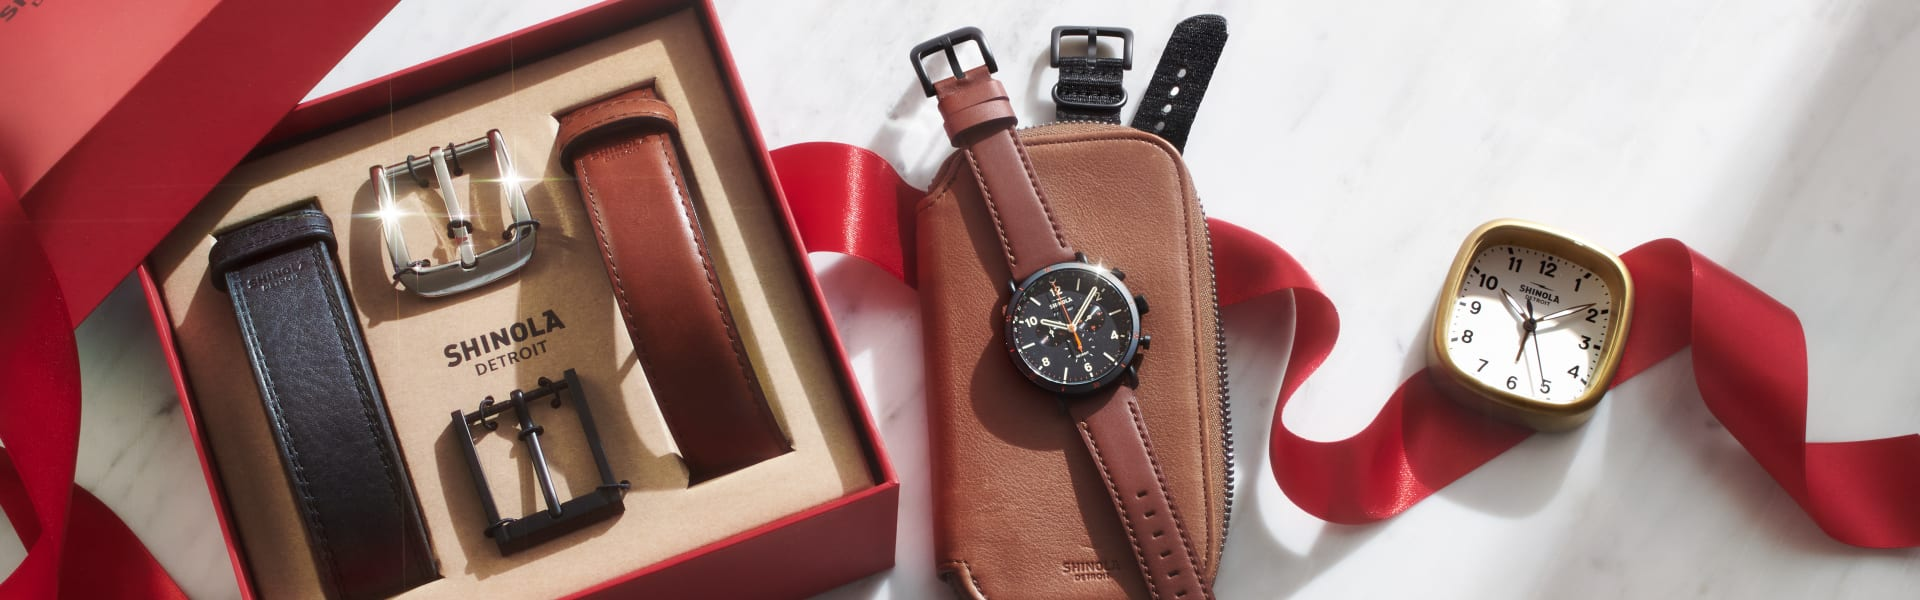 EXCLUSIVE TRAVEL WATCHCASE|EXCLUSIVE BELT GIFT SET|WATCH with BLACK FACE and LEATHER STRAPS|EXCLUSIVE GUARDIAN TRAVEL CLOCK